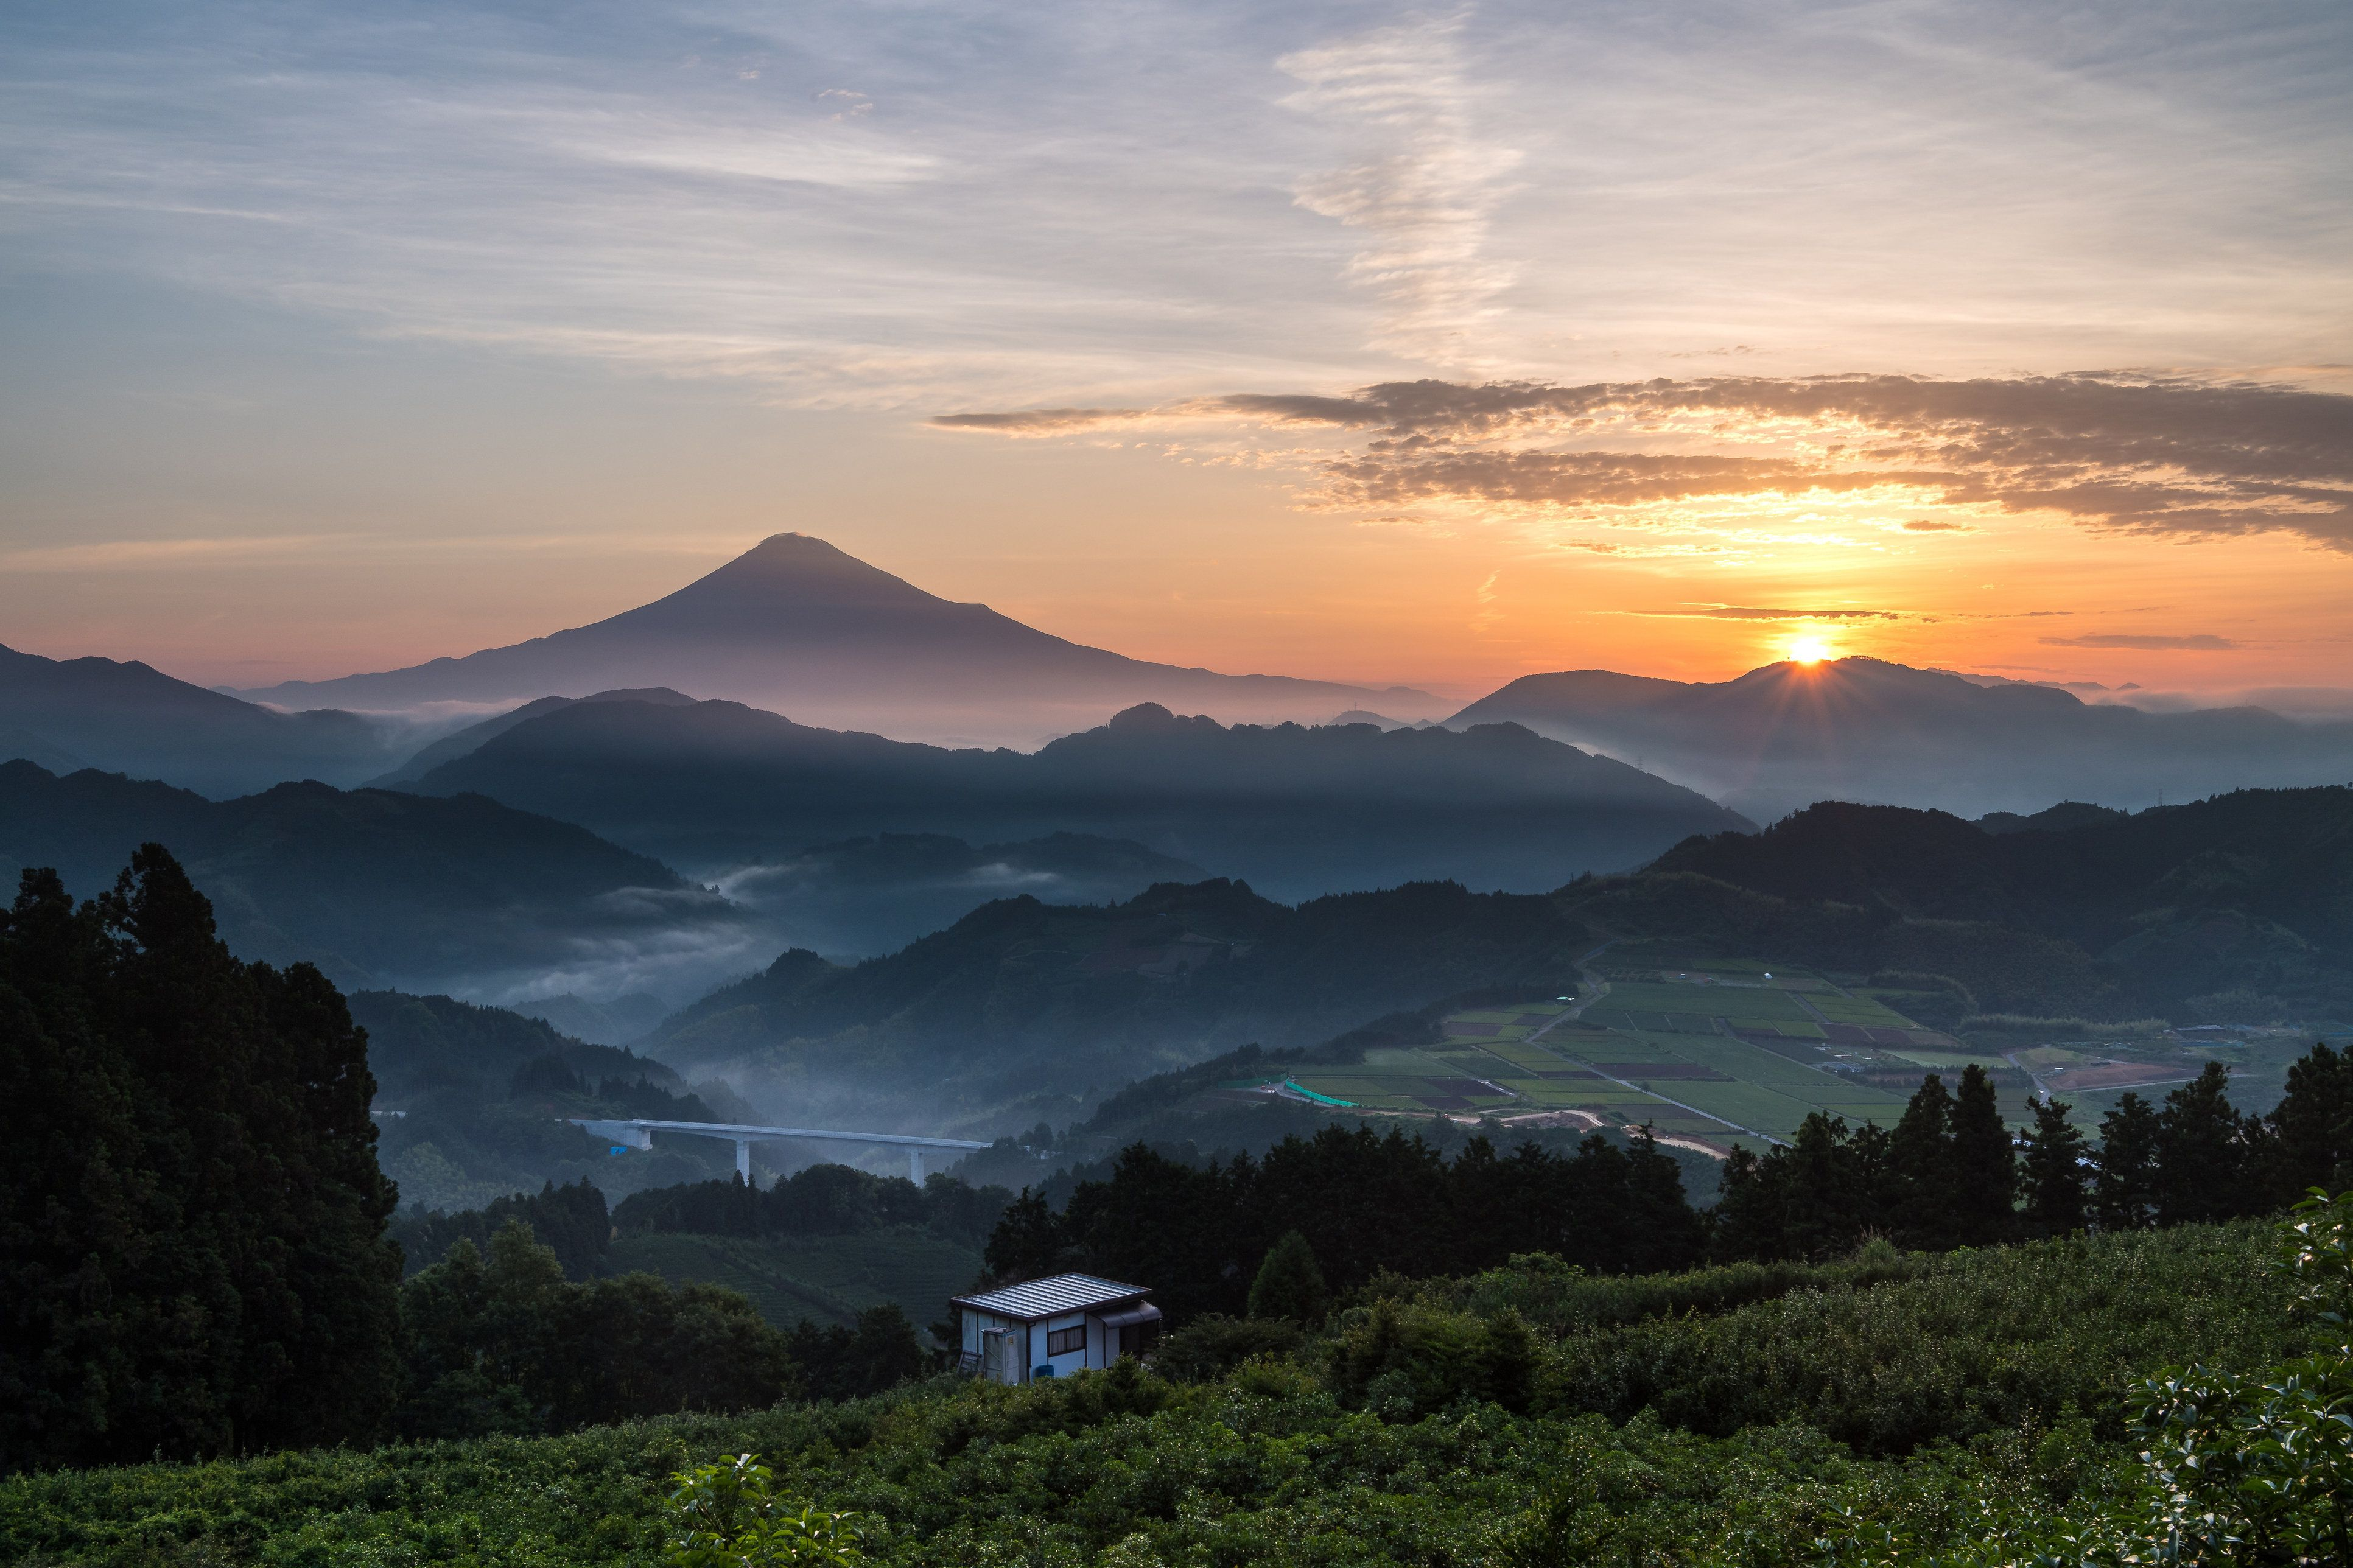 A morning moment of Mt. Fuji with sunrise in a valley in Shizuoka, Japan